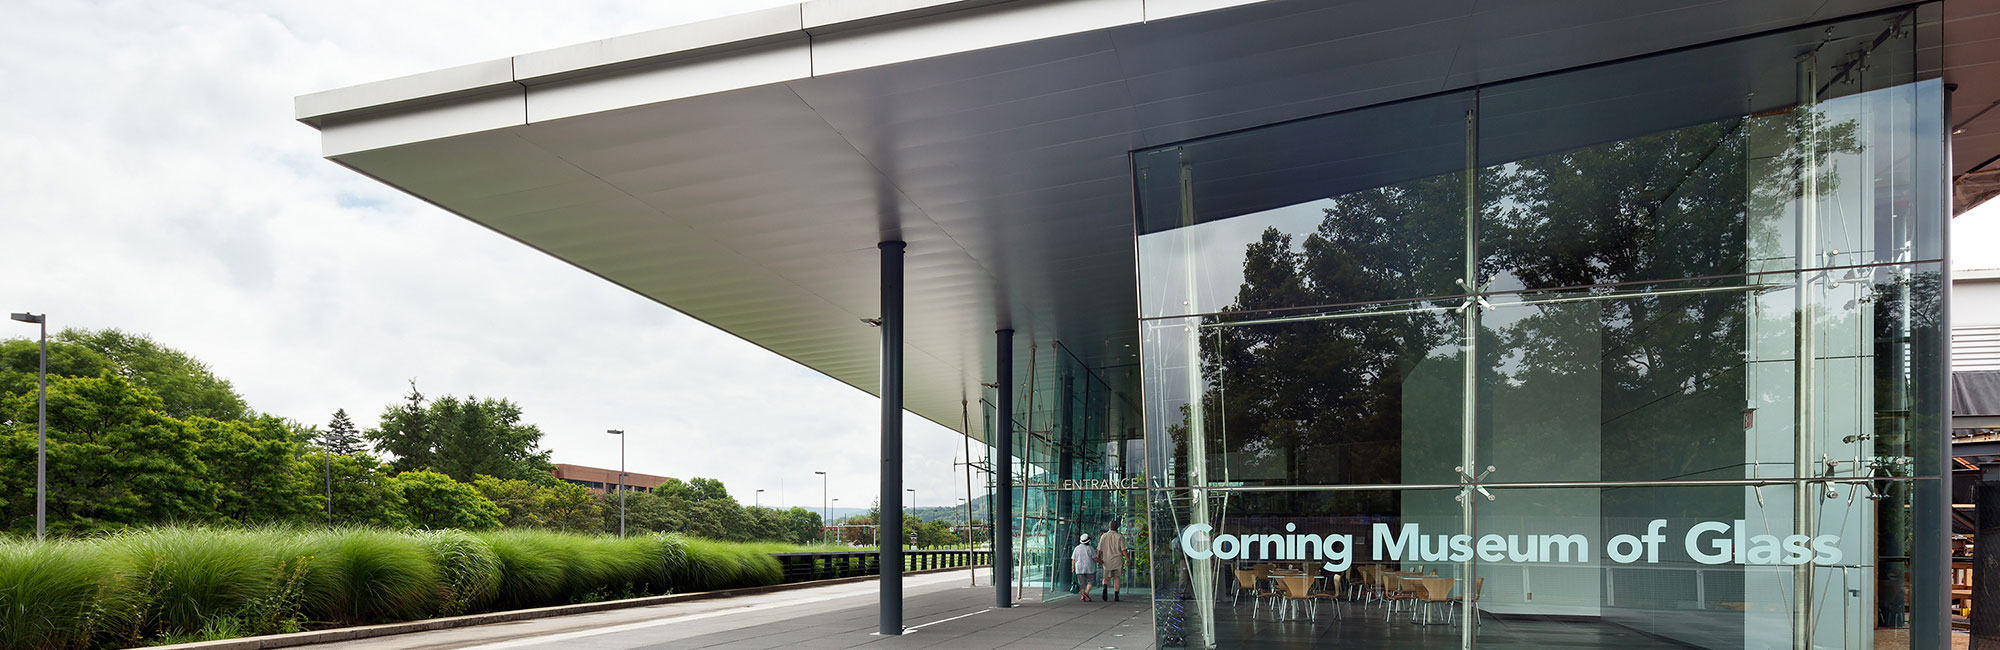 The Corning Museum of Glass entrance